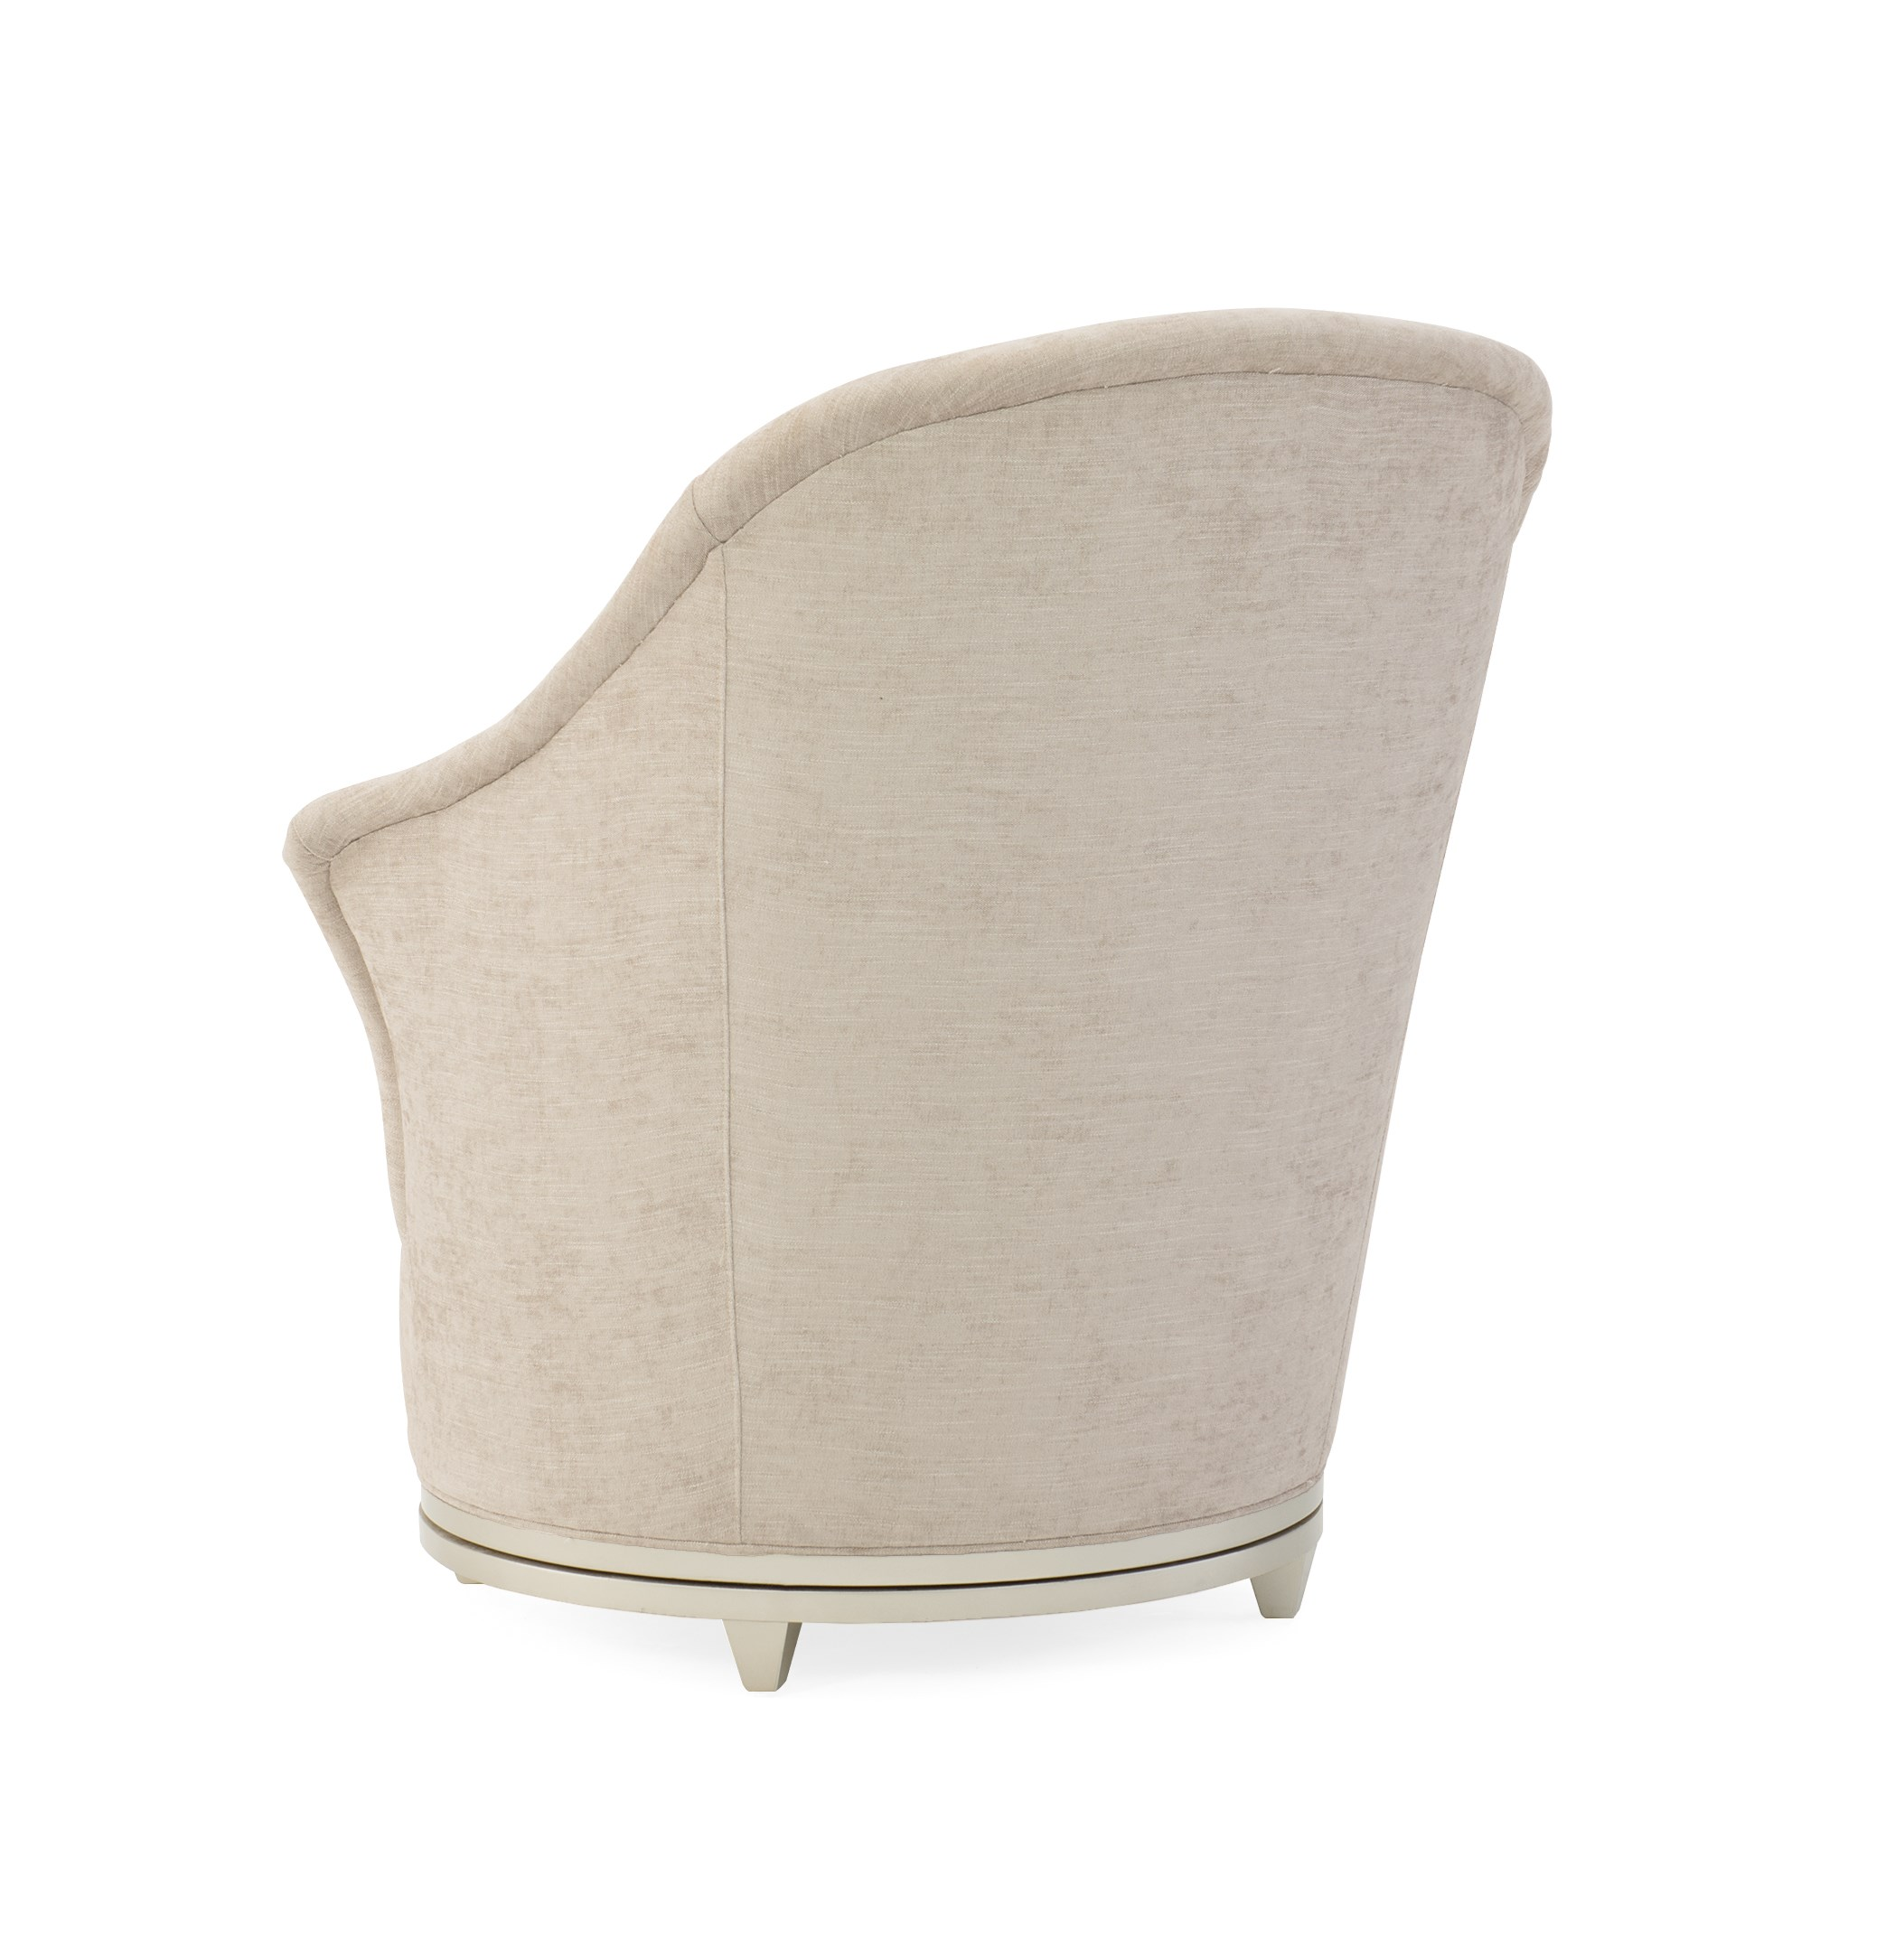 Magnificent Swivel Chair Caracole Evergreenethics Interior Chair Design Evergreenethicsorg